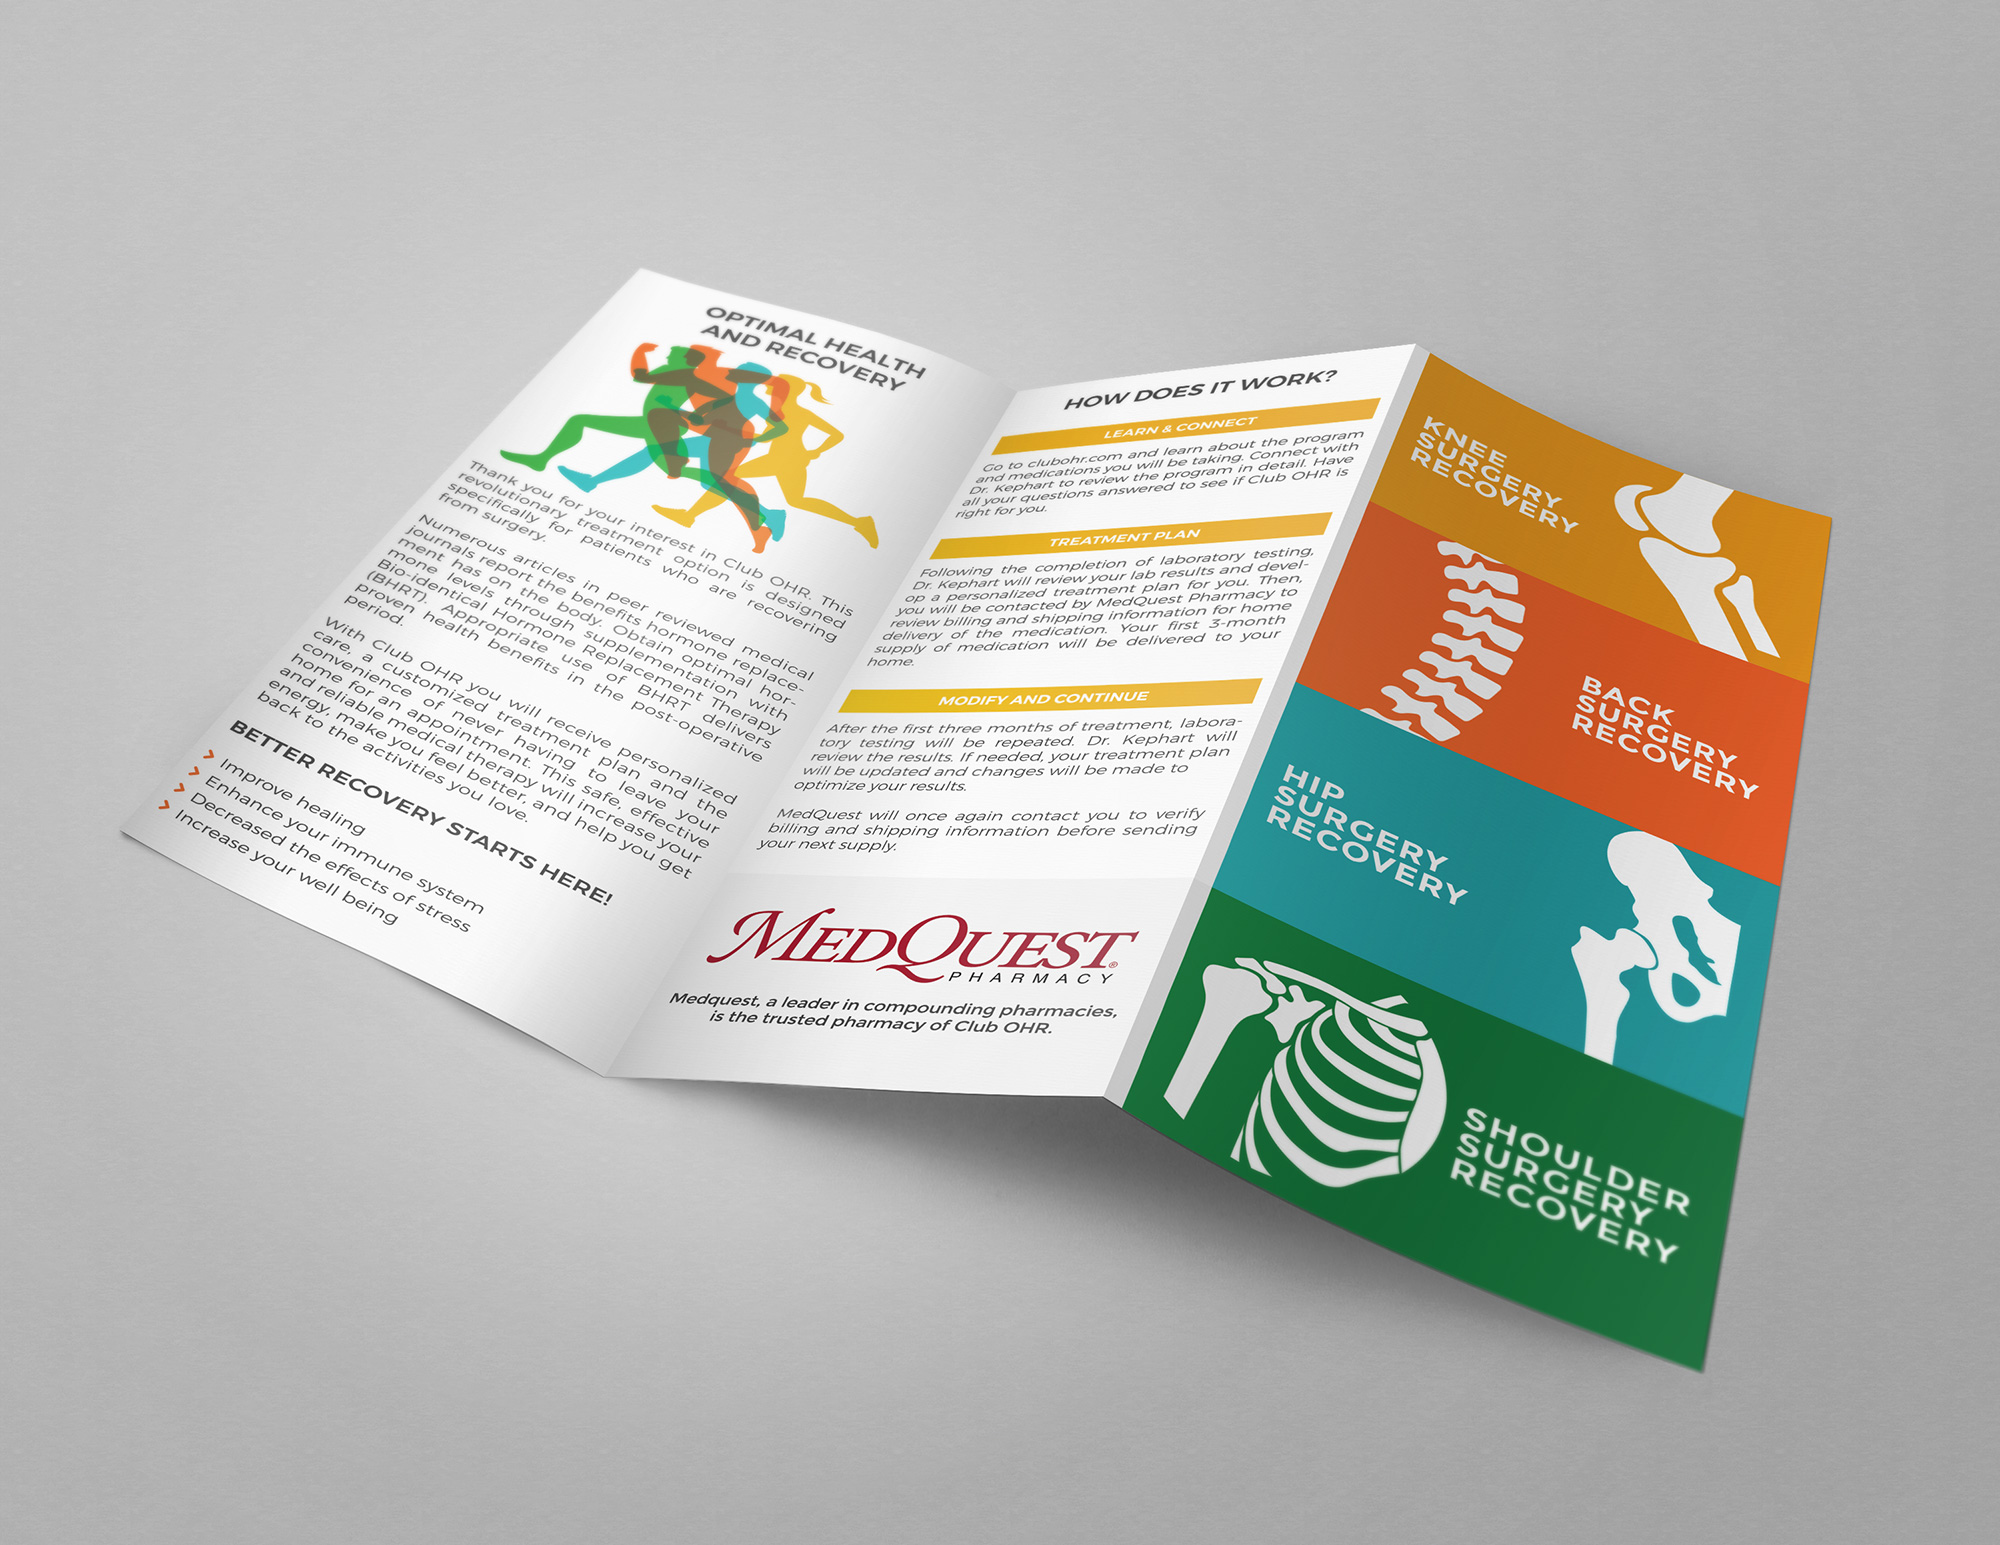 Print design portfolio graphic design altoona pa 16602 whether youre in need of business cards invitations flyers or brochures we will create a custom design that fits your needs and budget colourmoves